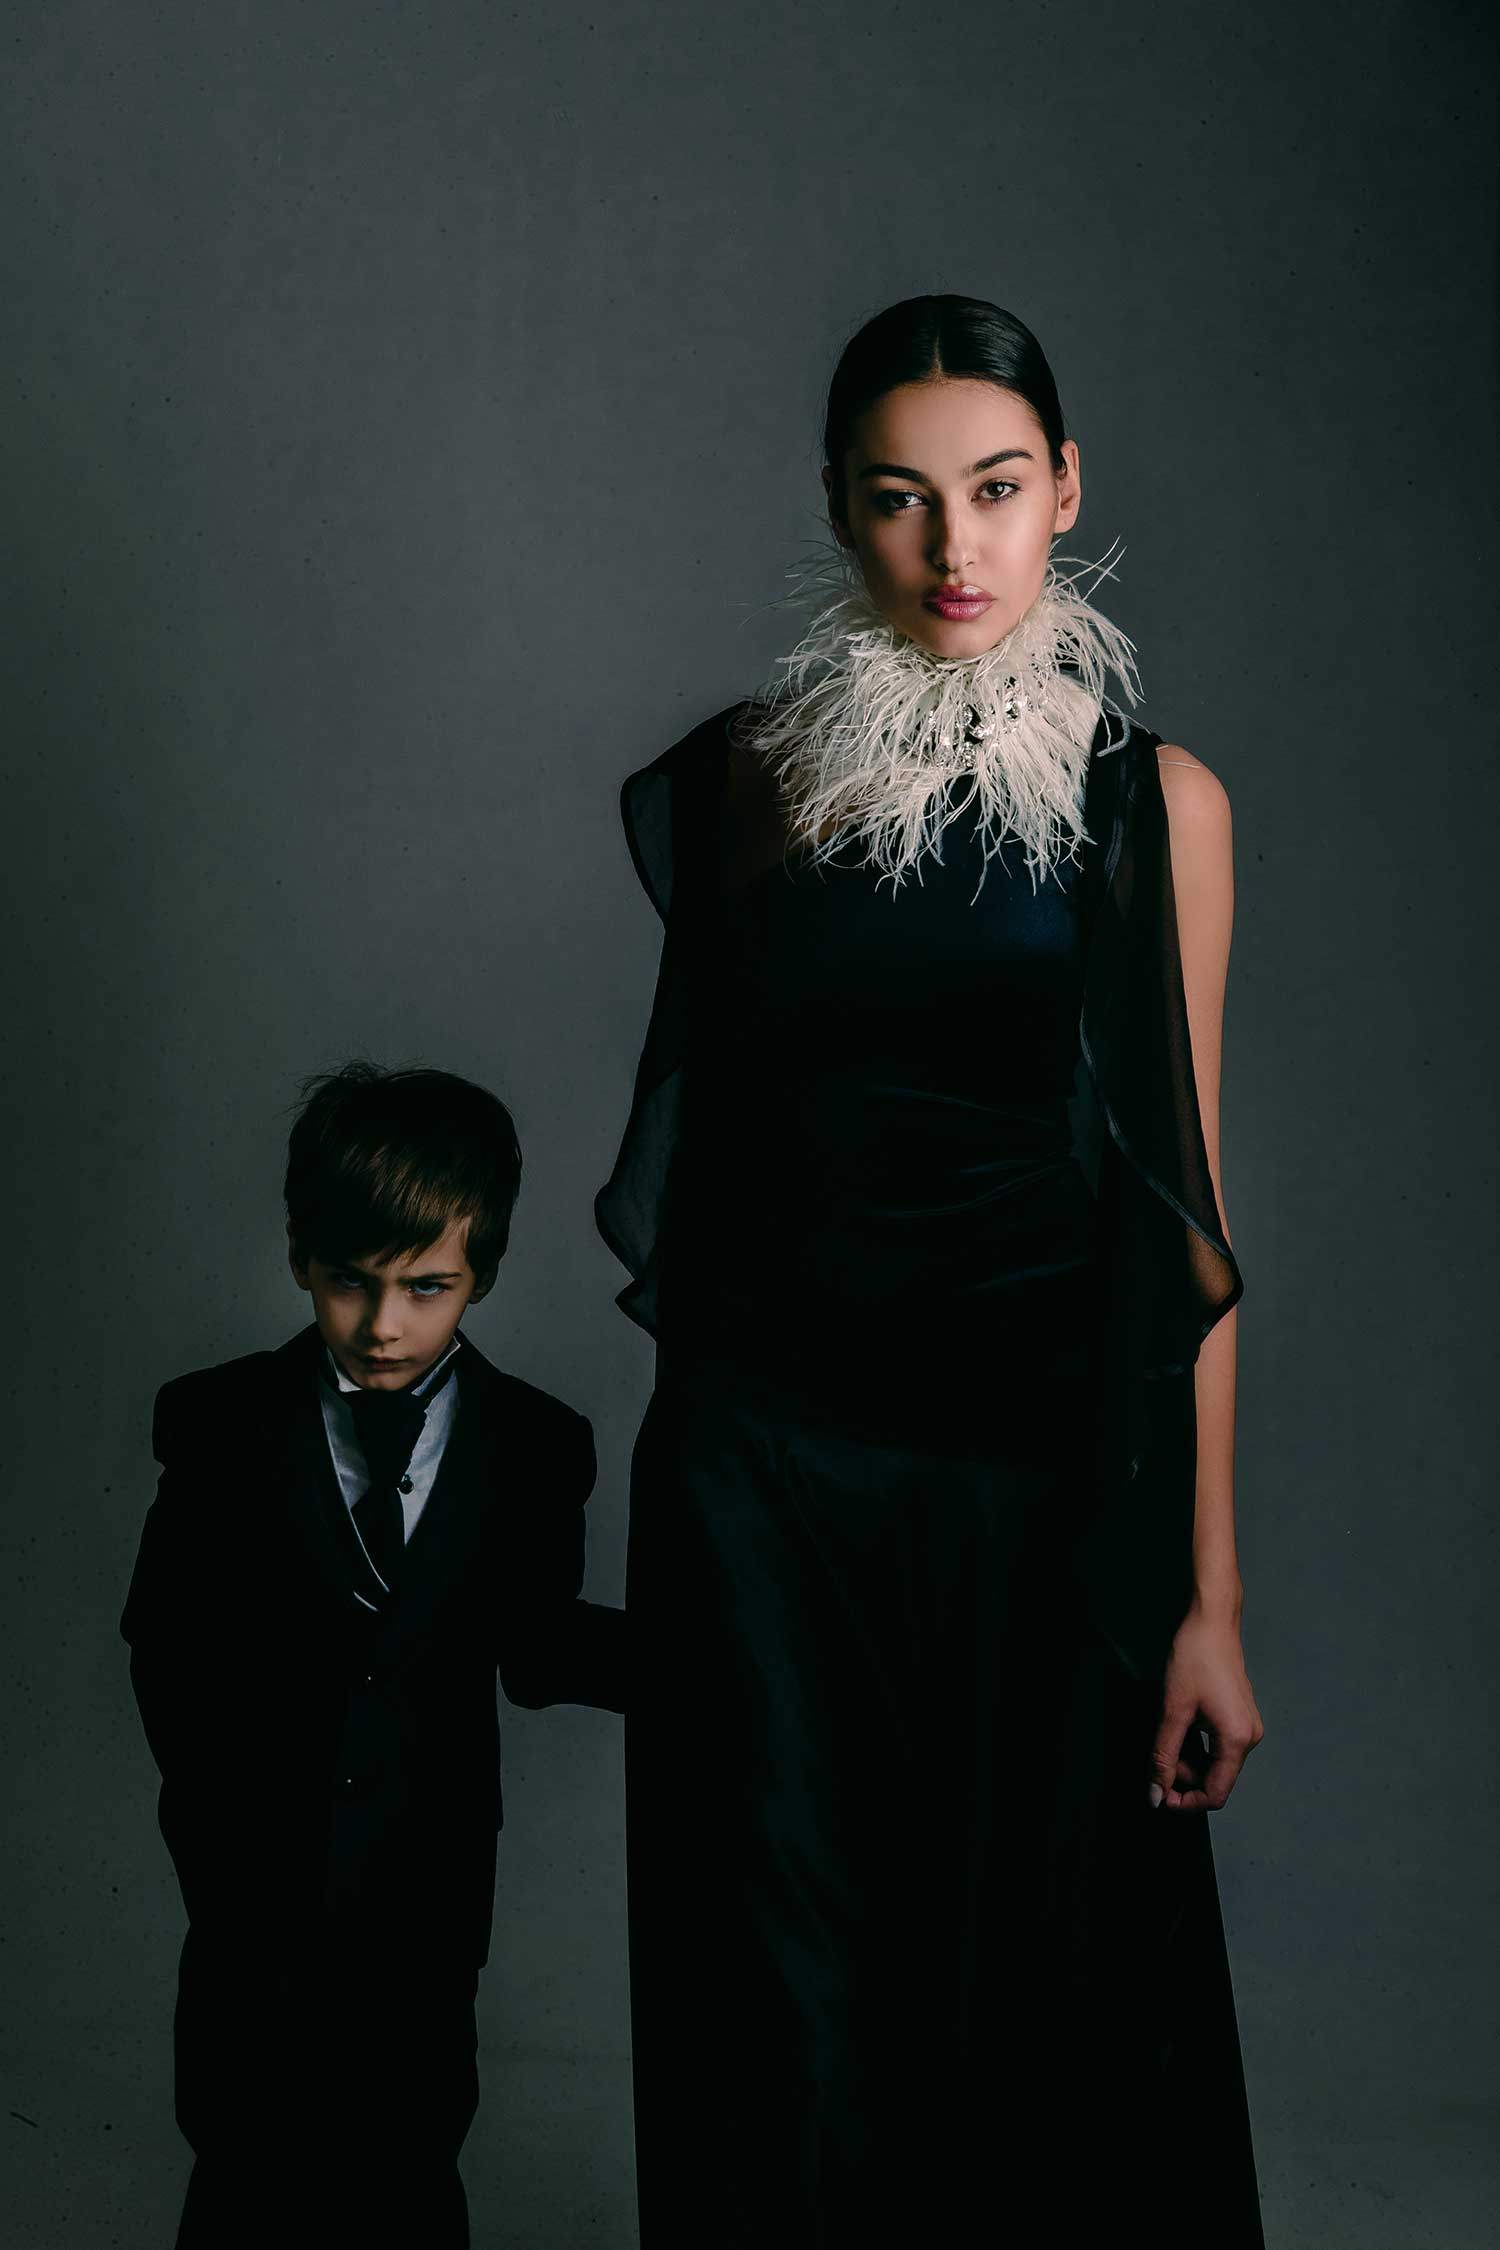 Model Adrola Dushi and her son posing together